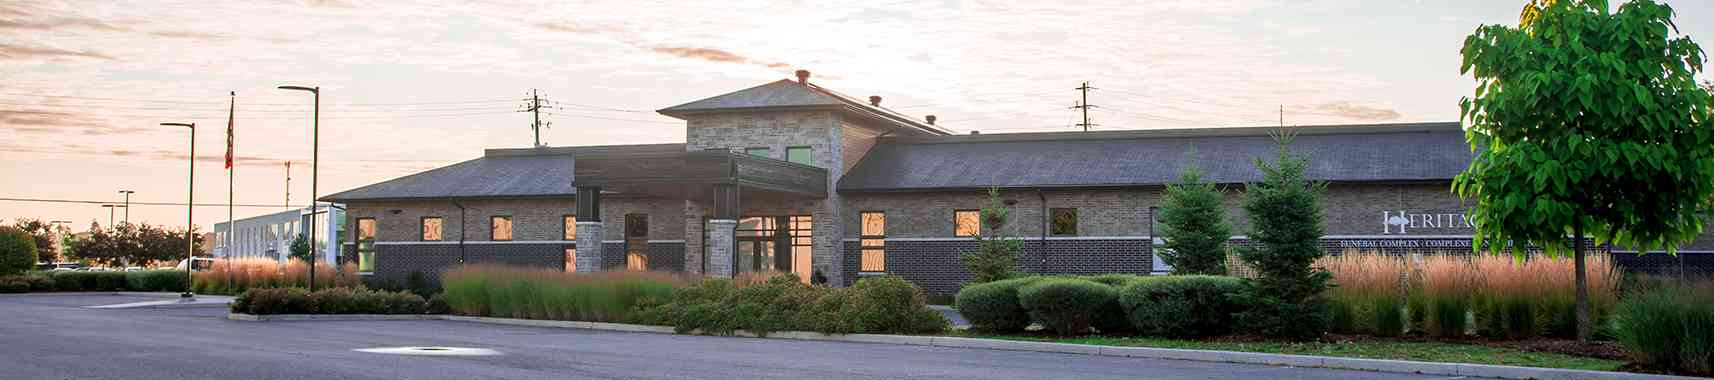 Exterior view of Heritage Funeral Home in Ottawa and Orléans